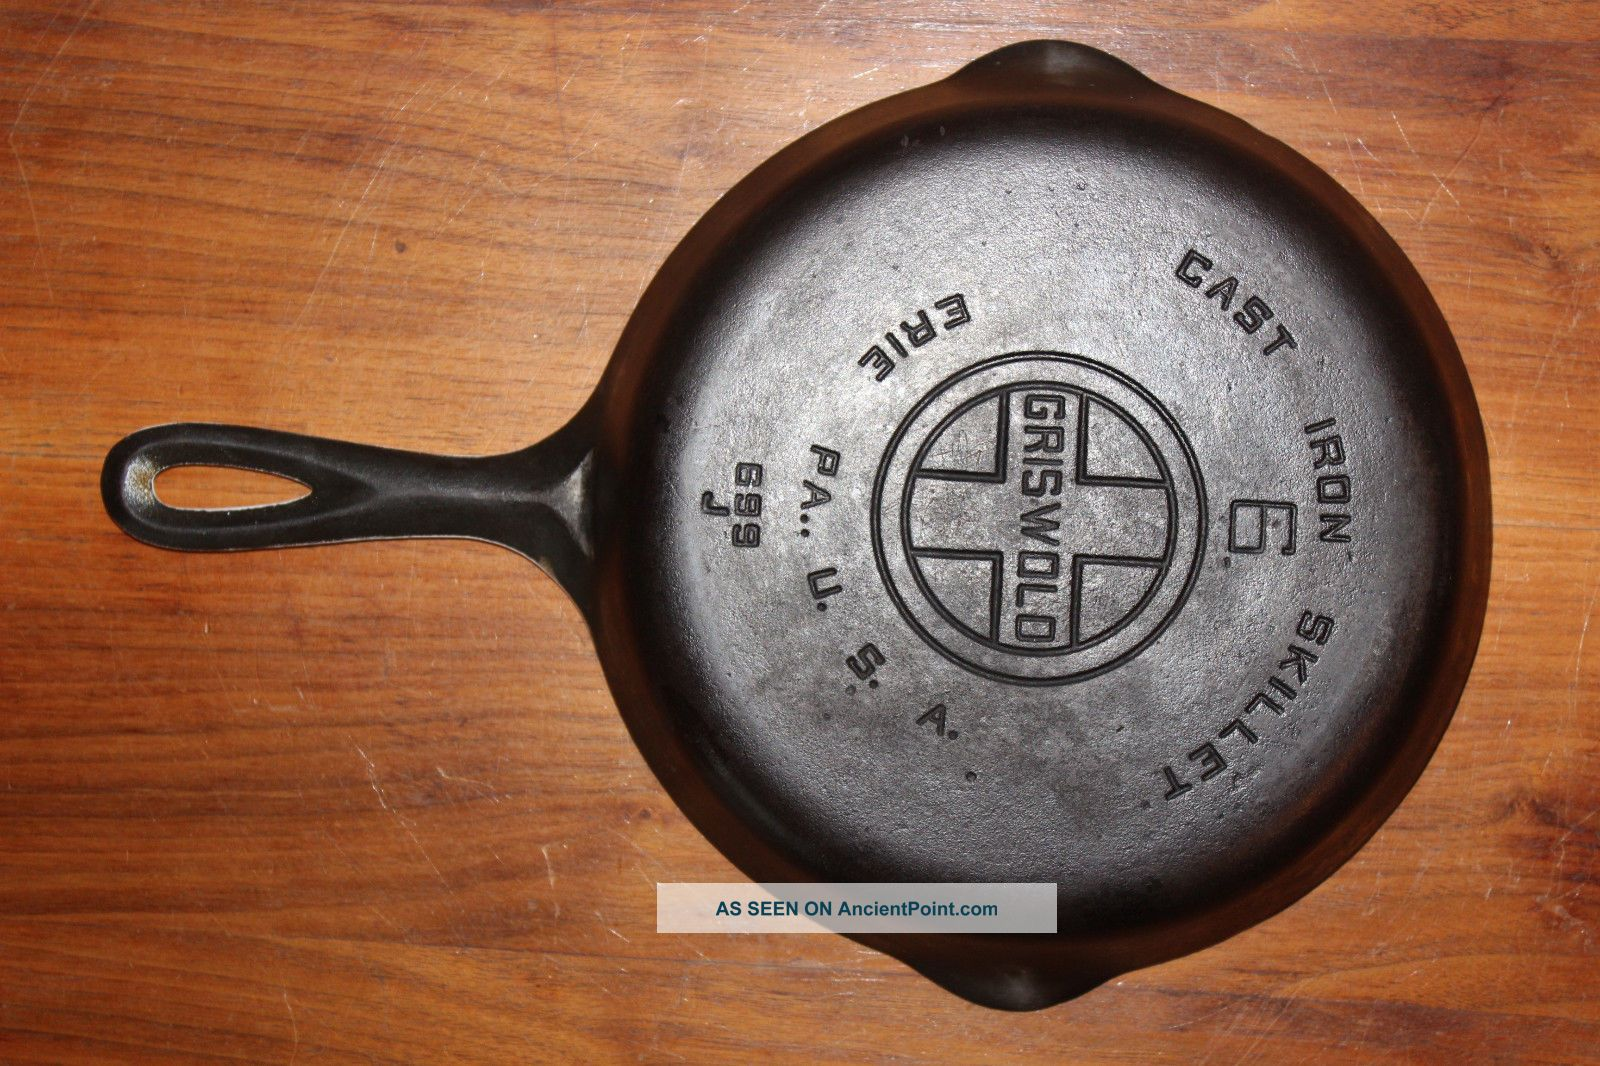 Scarce 1950 ' S Griswold Quaker Ware Porcelain Lined 6 Skillet Vintage Cast Iron Other Antique Home & Hearth photo